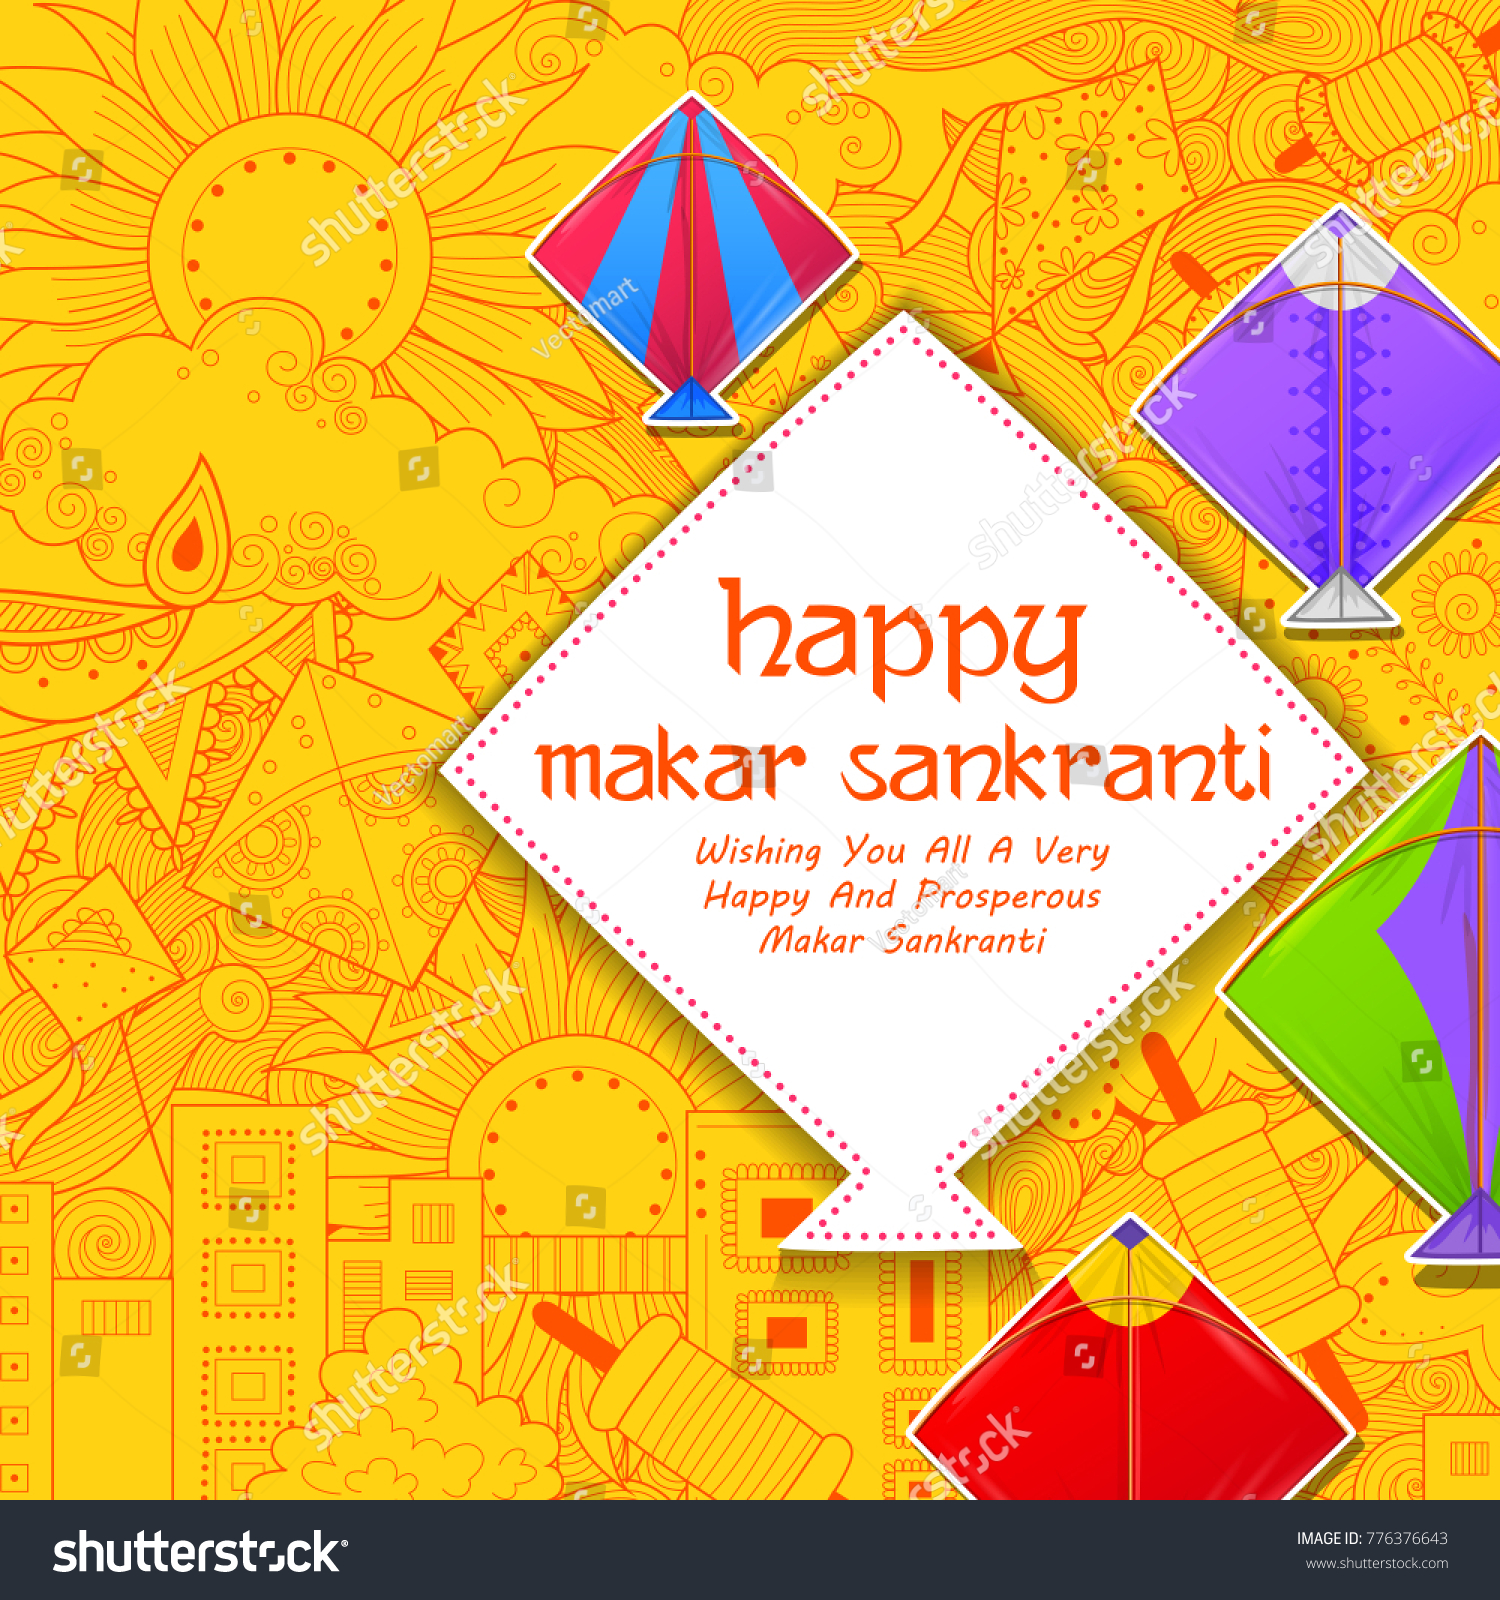 Illustration Happy Makar Sankranti Wallpaper Colorful Stock